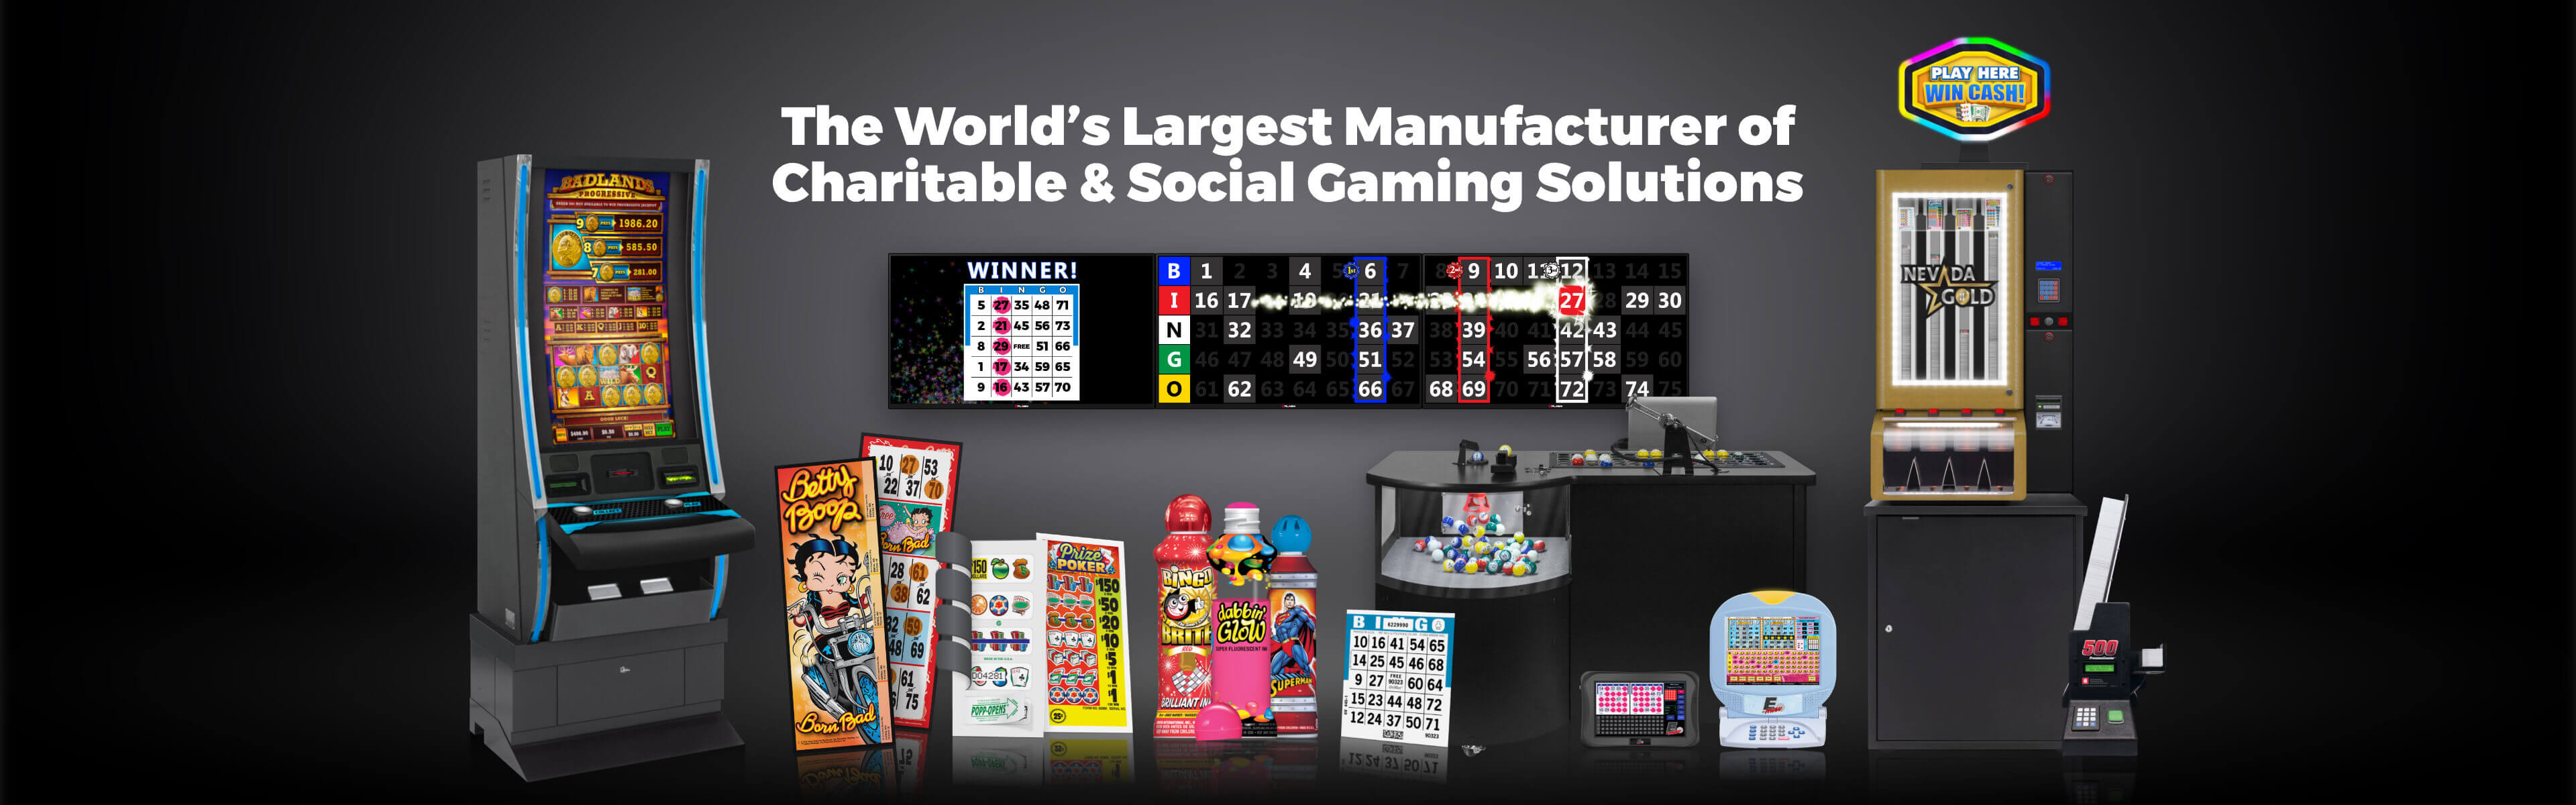 Charitable Gaming Solutions